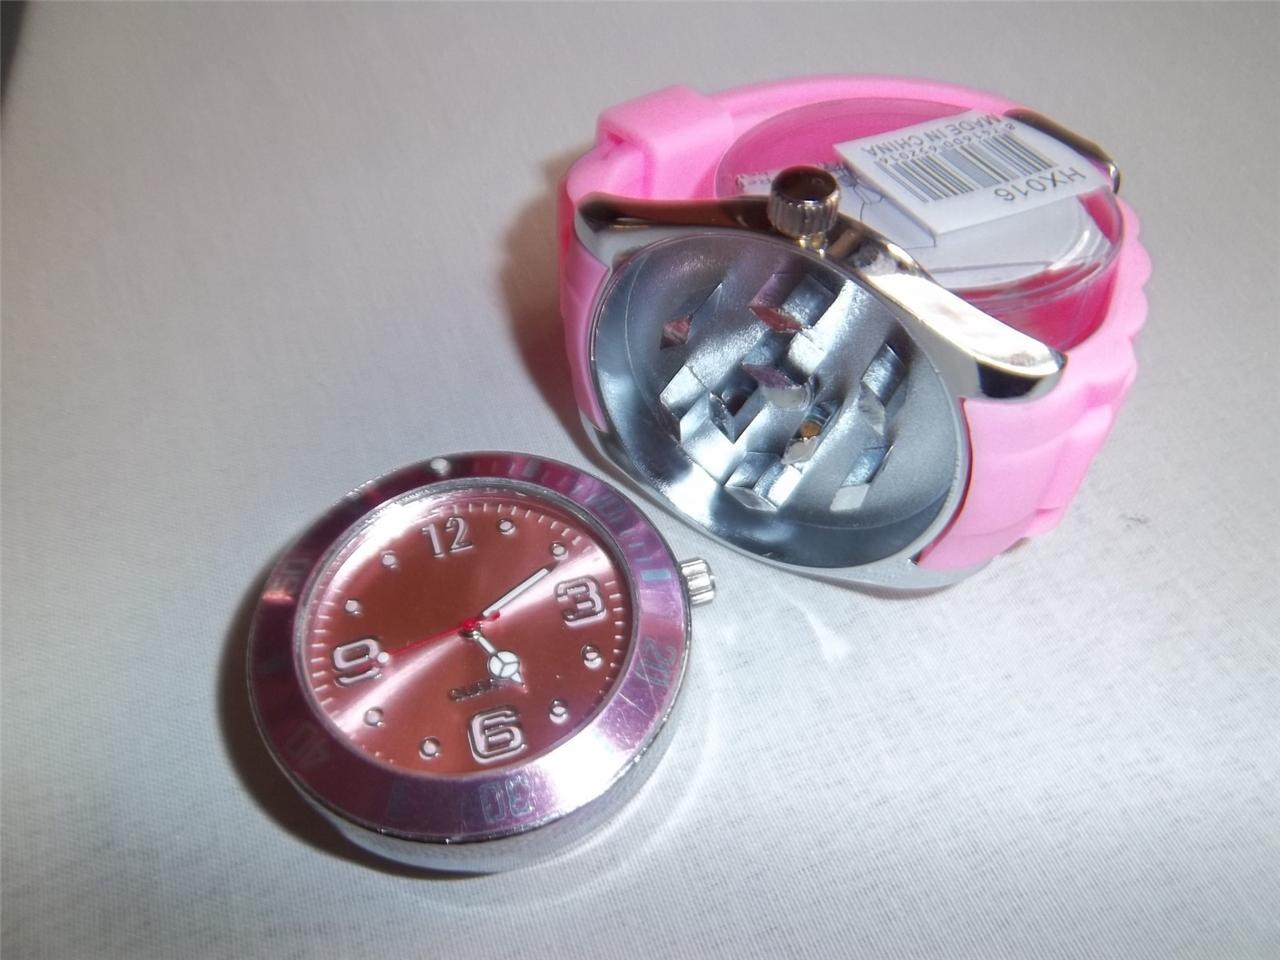 1 Sexy Sports Unisex 2 in 1 Working Watch With Herb Tobacco Shark Teeth Grinder